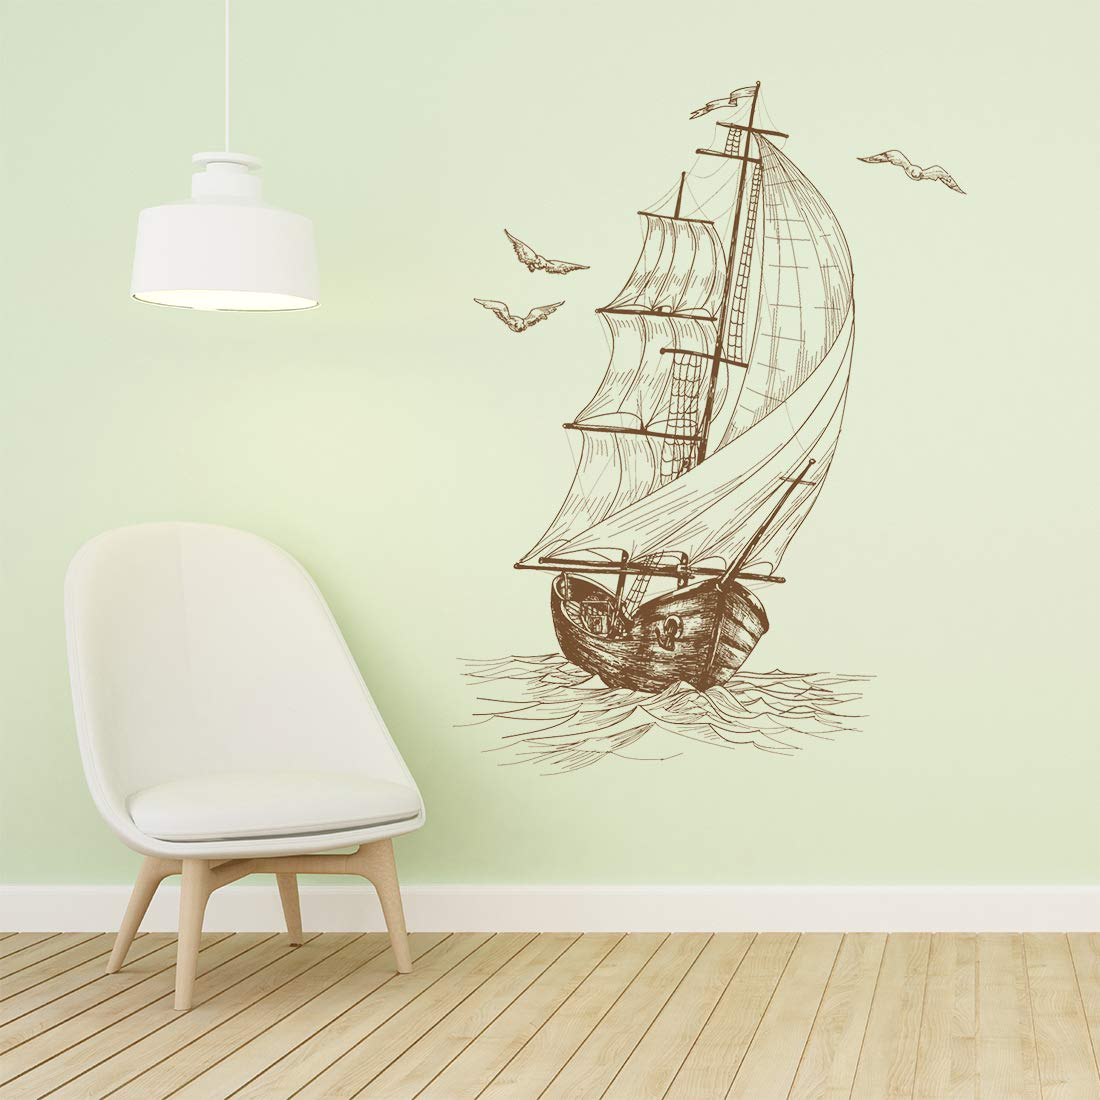 Quickun Wall Stickers, Wall Decals, Sailboat Decor for Wall Murals Home Decor Removable Windows Decorations Wallpaper Treatments (Sailboat)